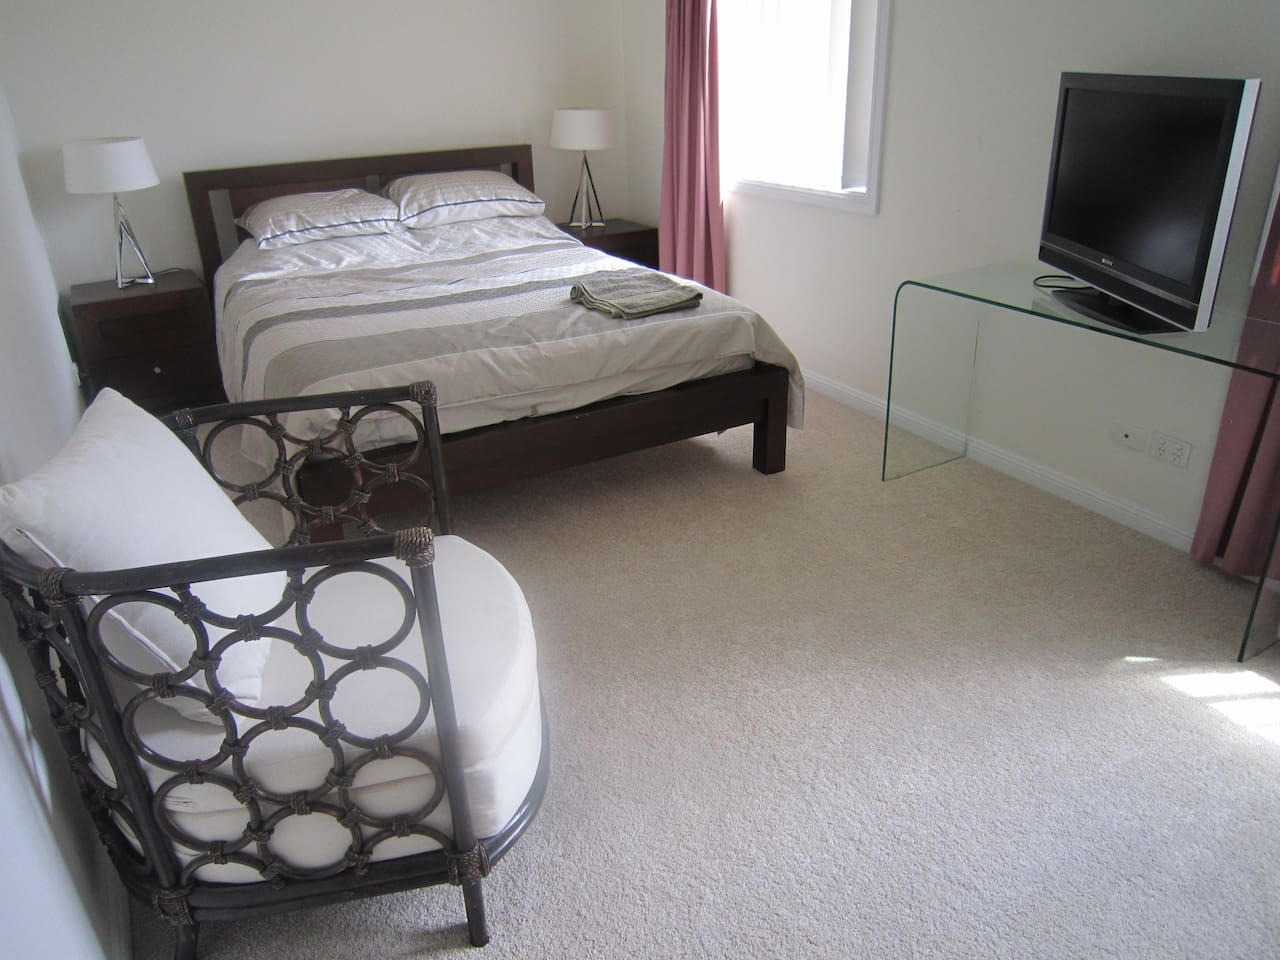 Private room and bathroom 12km from Sydney CBD